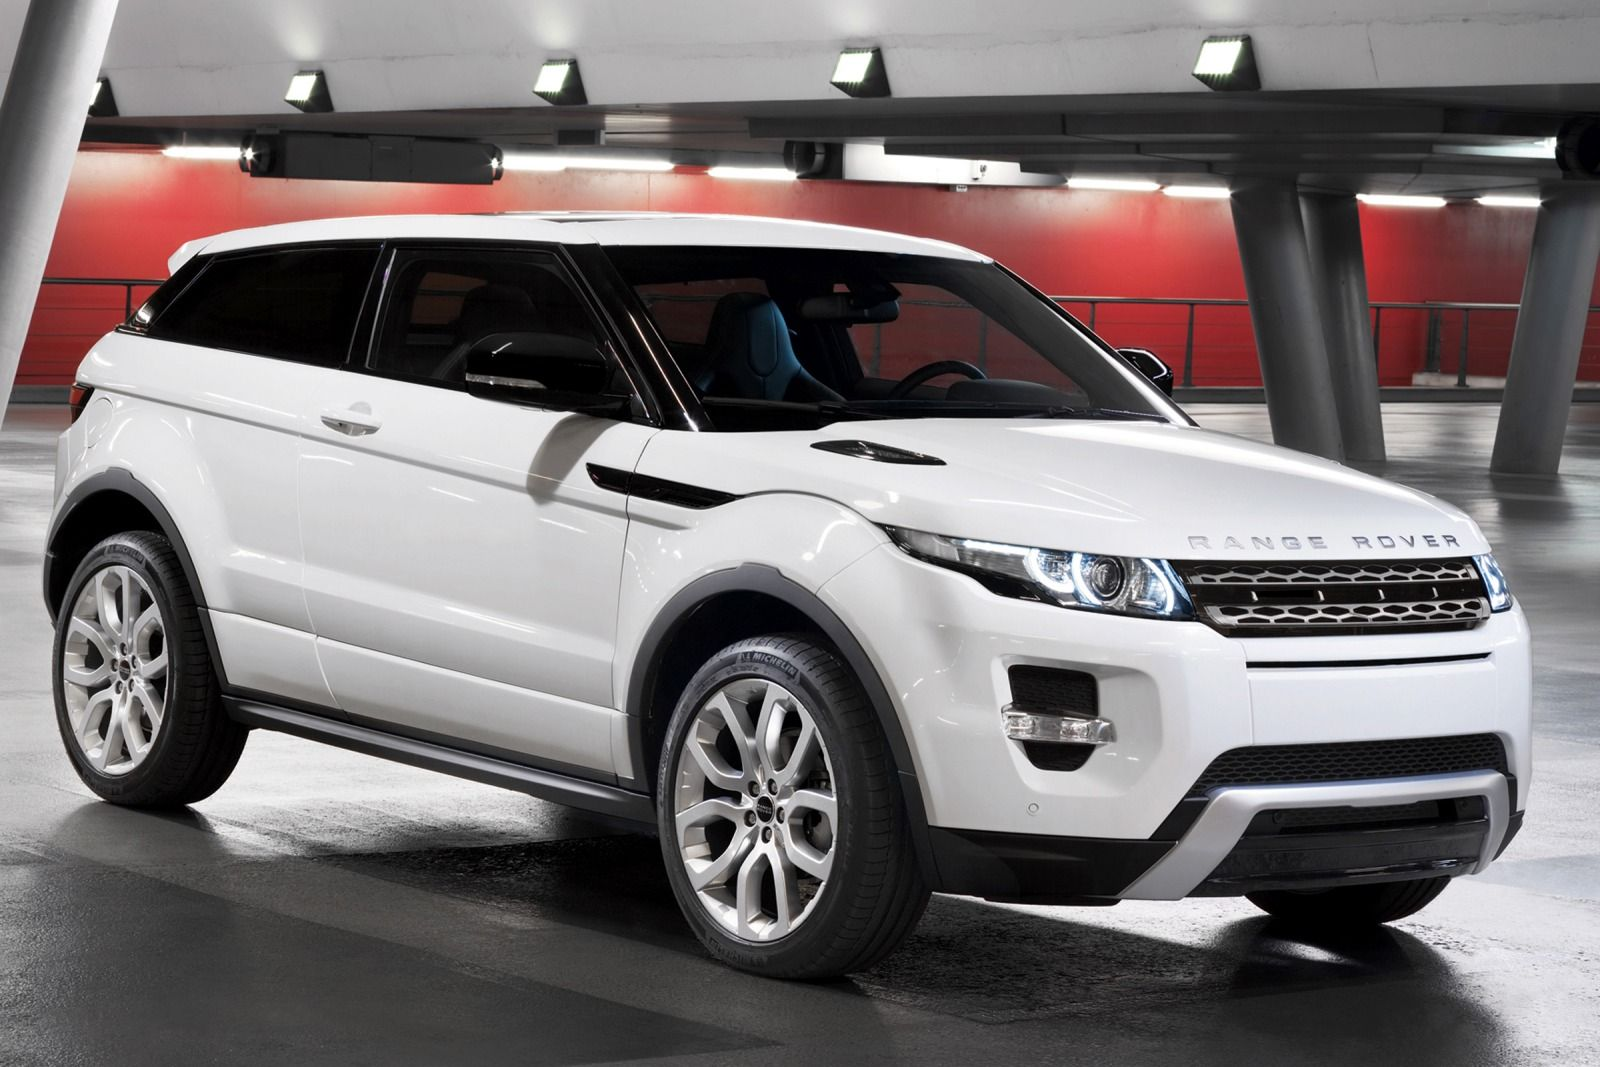 2015 land rover range rover evoque information and photos. Black Bedroom Furniture Sets. Home Design Ideas